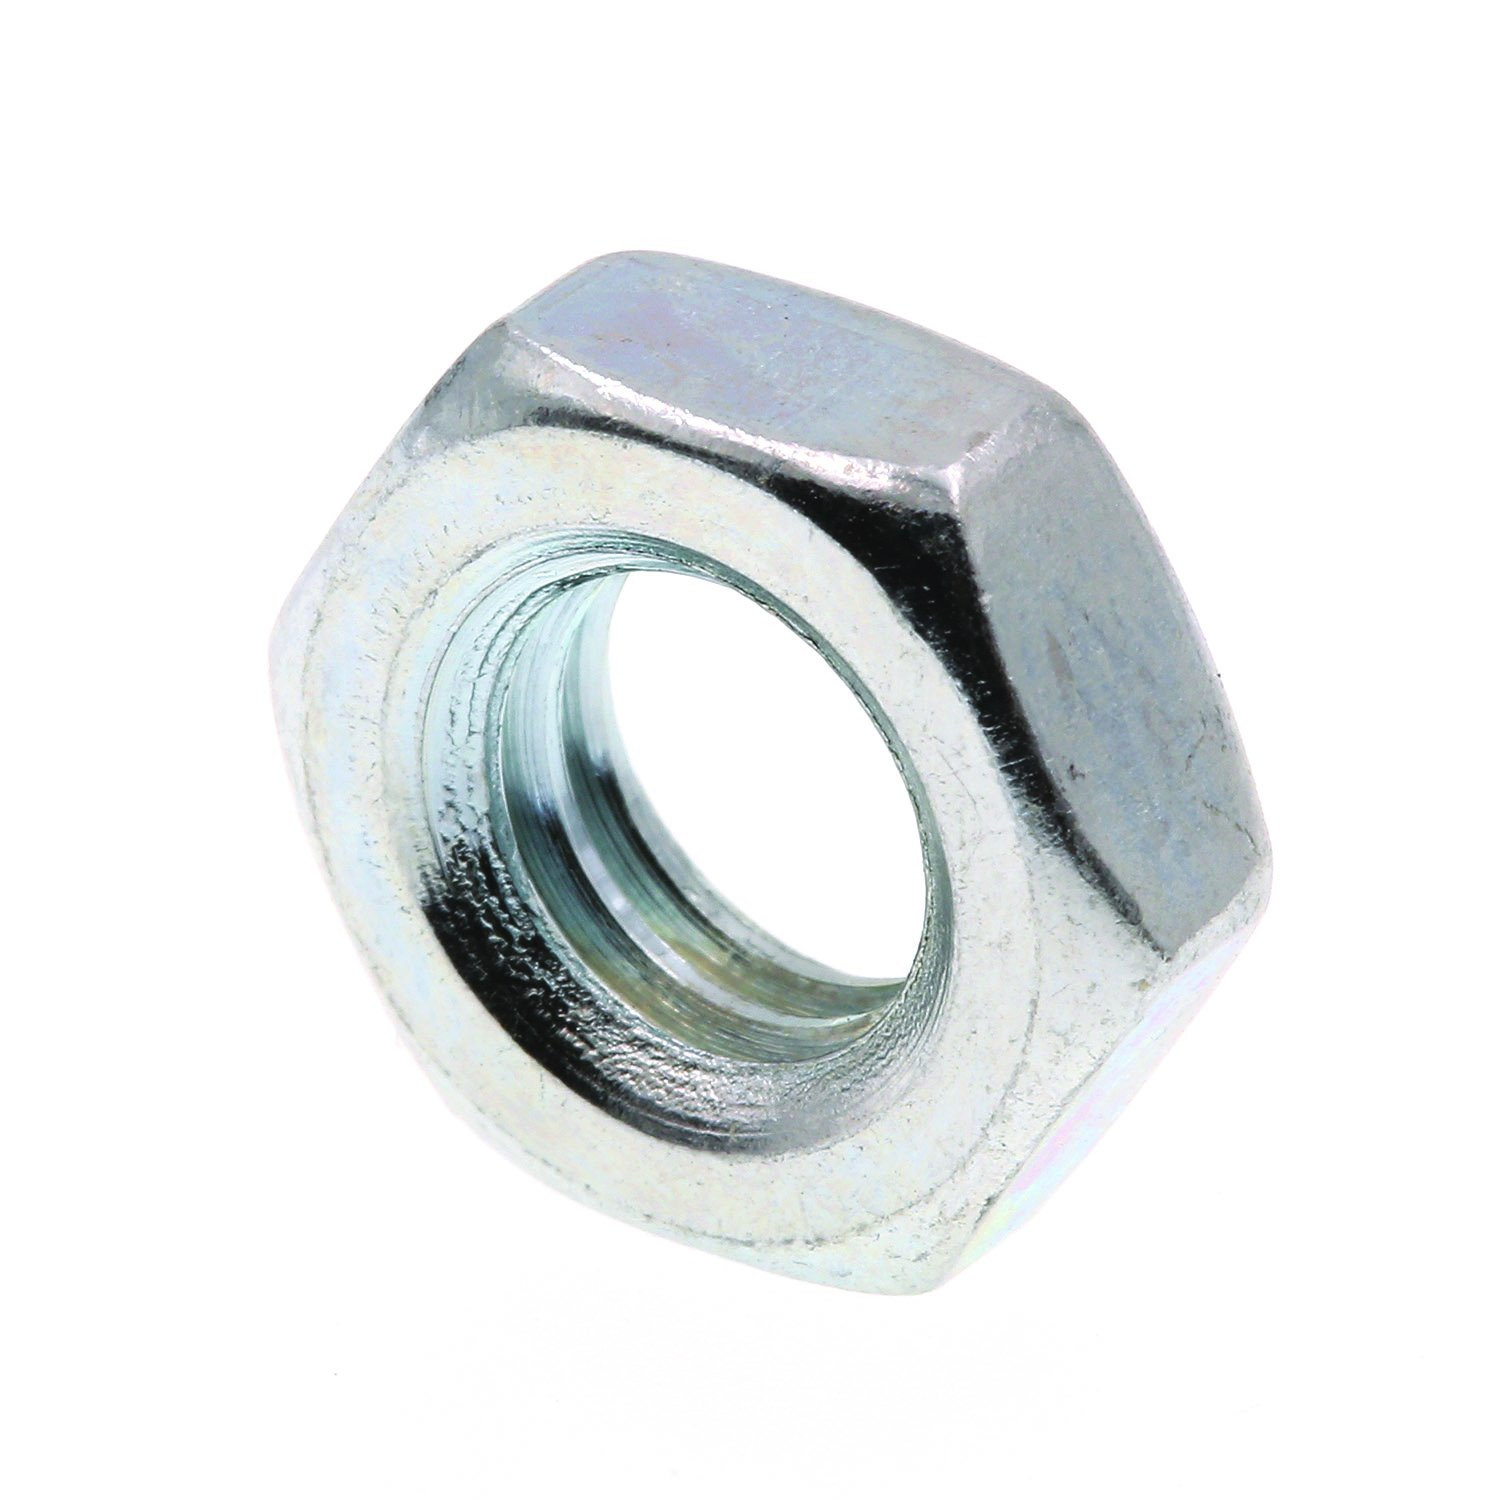 100-Pack A563 Grade A Zinc Plated Steel 5//16 in.-18 Prime-Line 9075866 Hex Jam Nuts